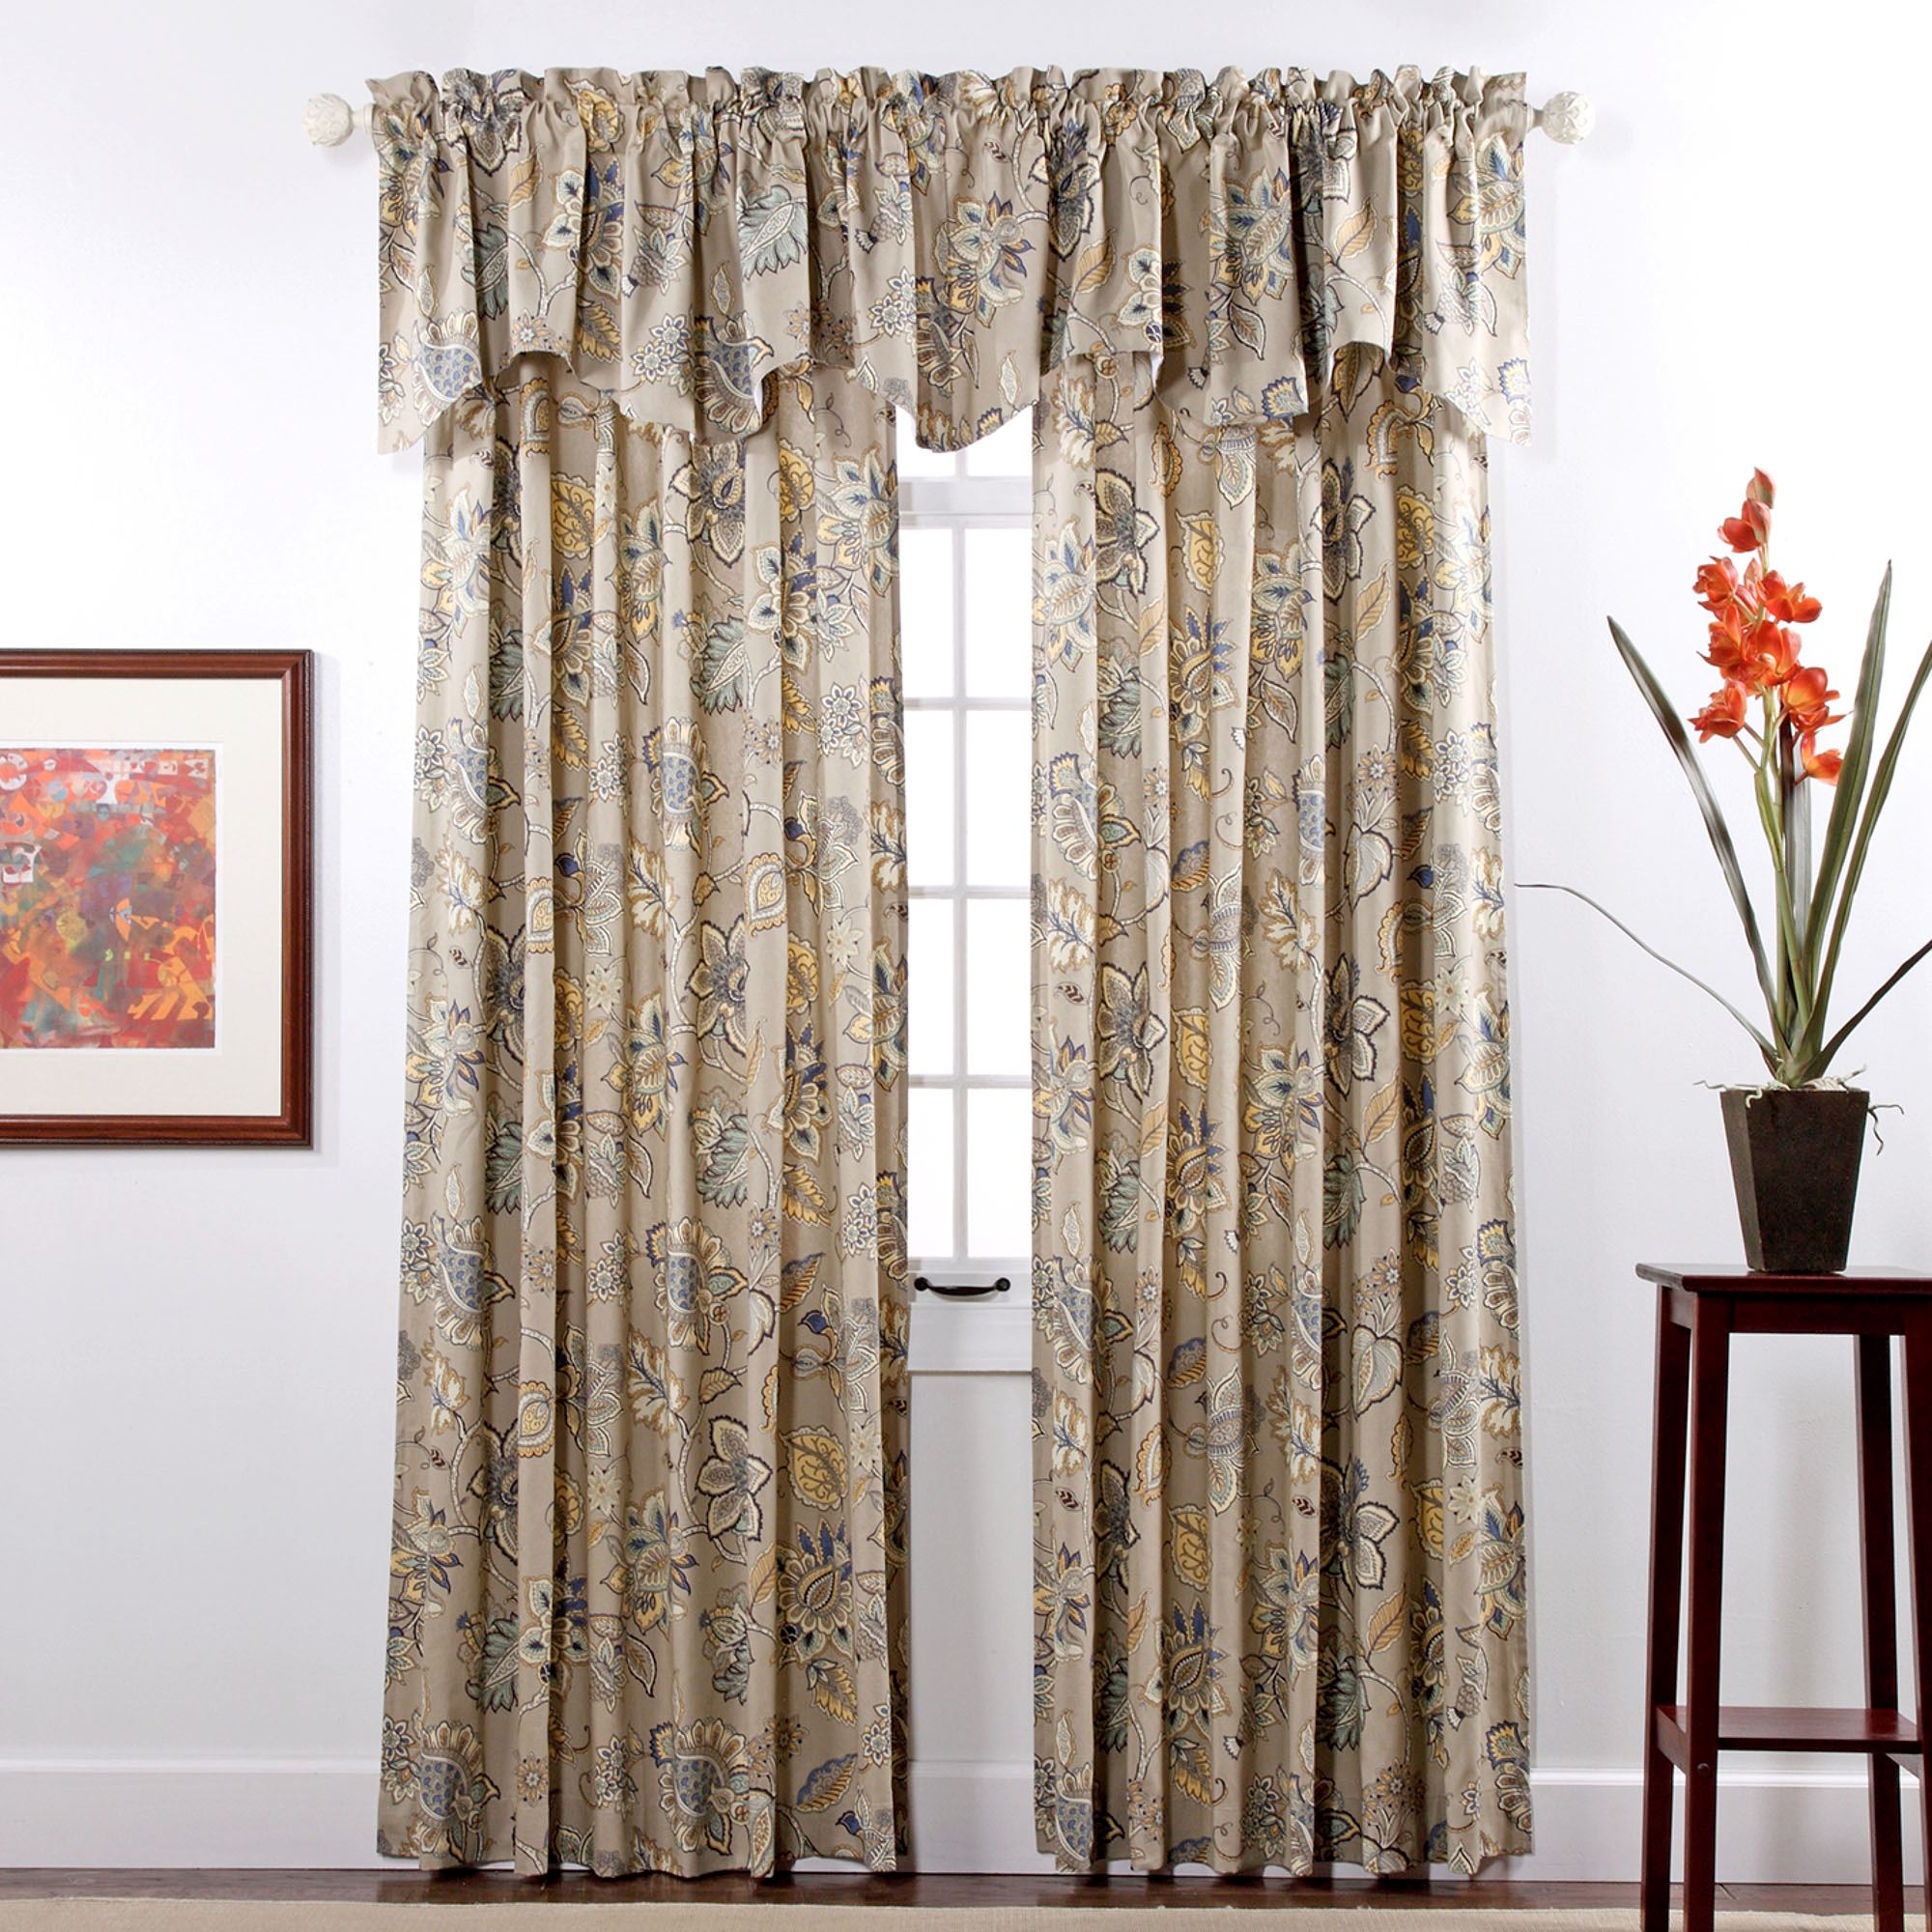 price printed x half hpd curtain drapes rust cotton com prct curtains orange panels kitchen dp amazon home